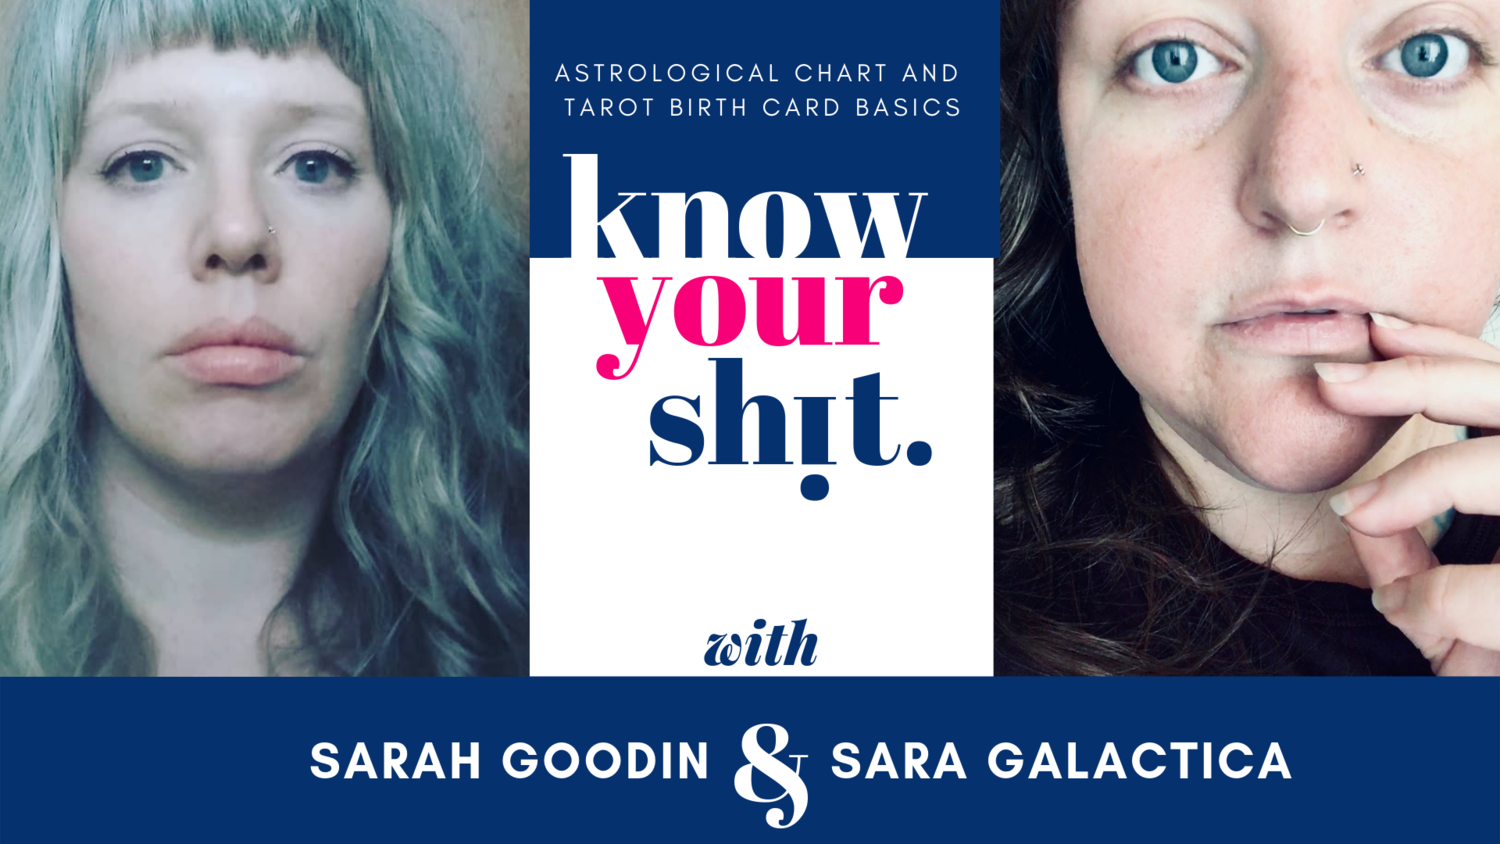 Know Your Shit: Astrological Chart and Tarot Birth Card Basics